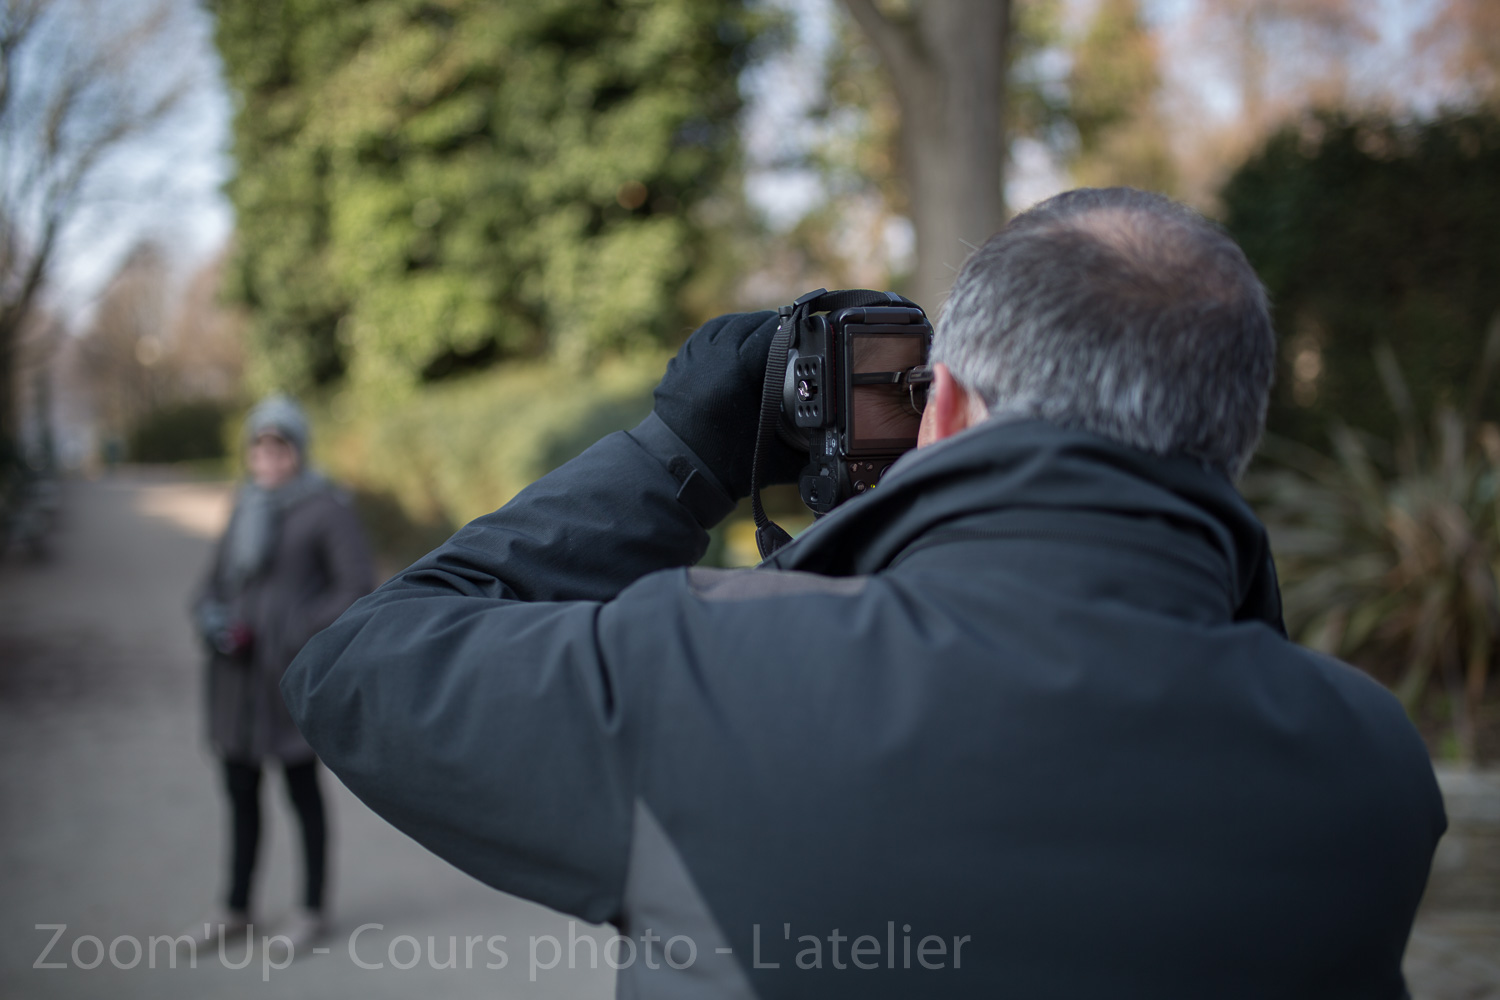 Les participants au travail - Zoom'Up - Cours photo - L'atelier